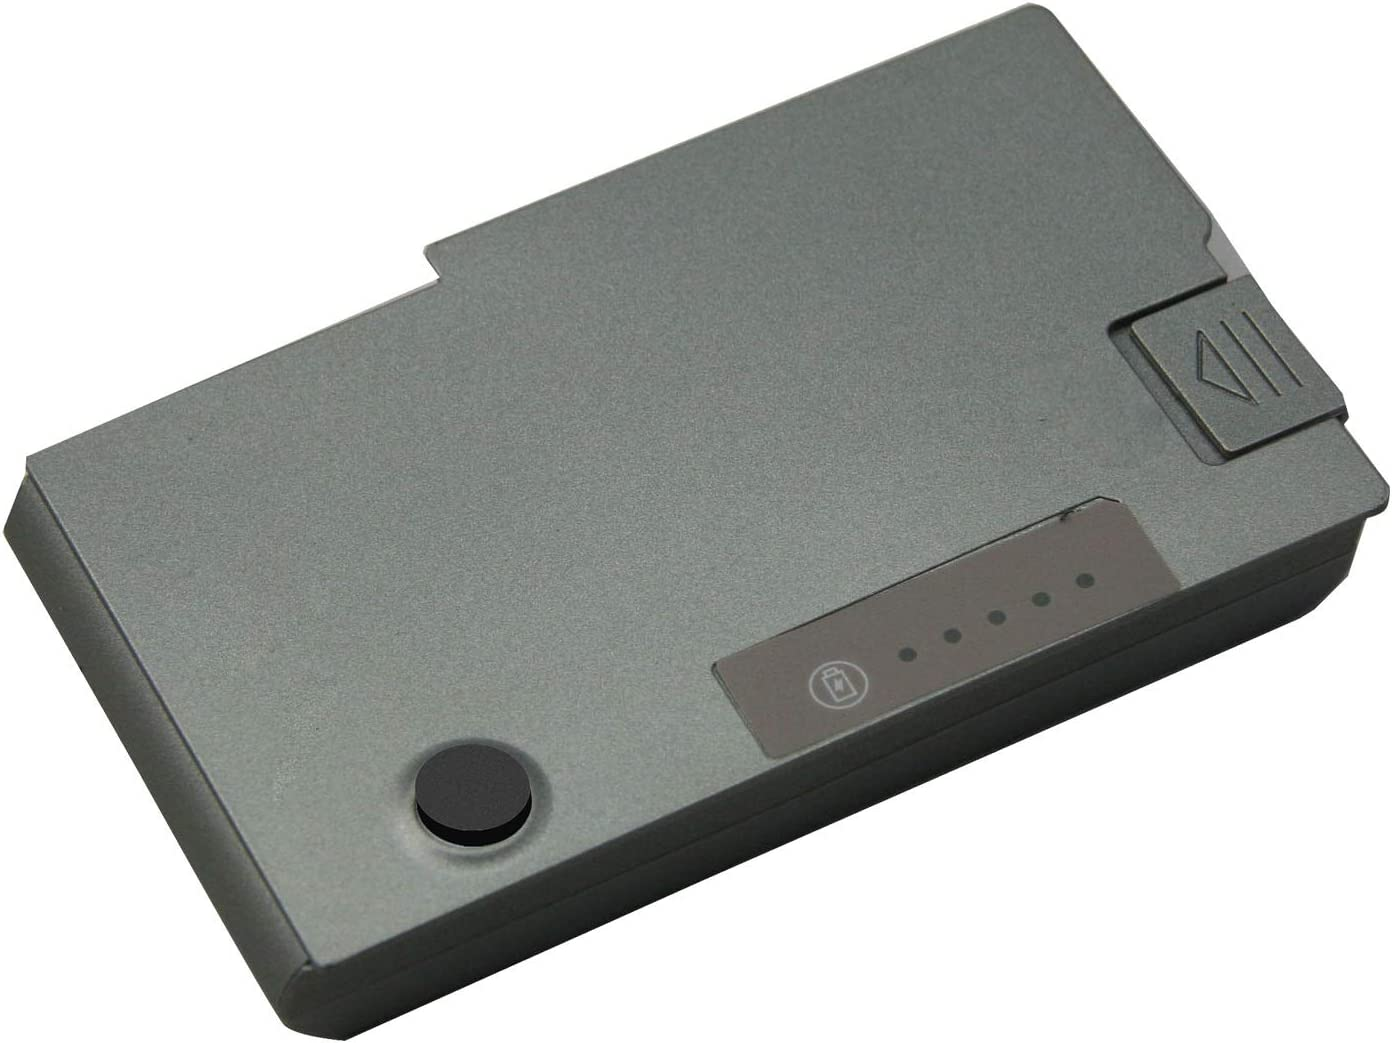 Battery for Dell uy444 315-0084 3R305 C1295 G2053 M9014 W1605